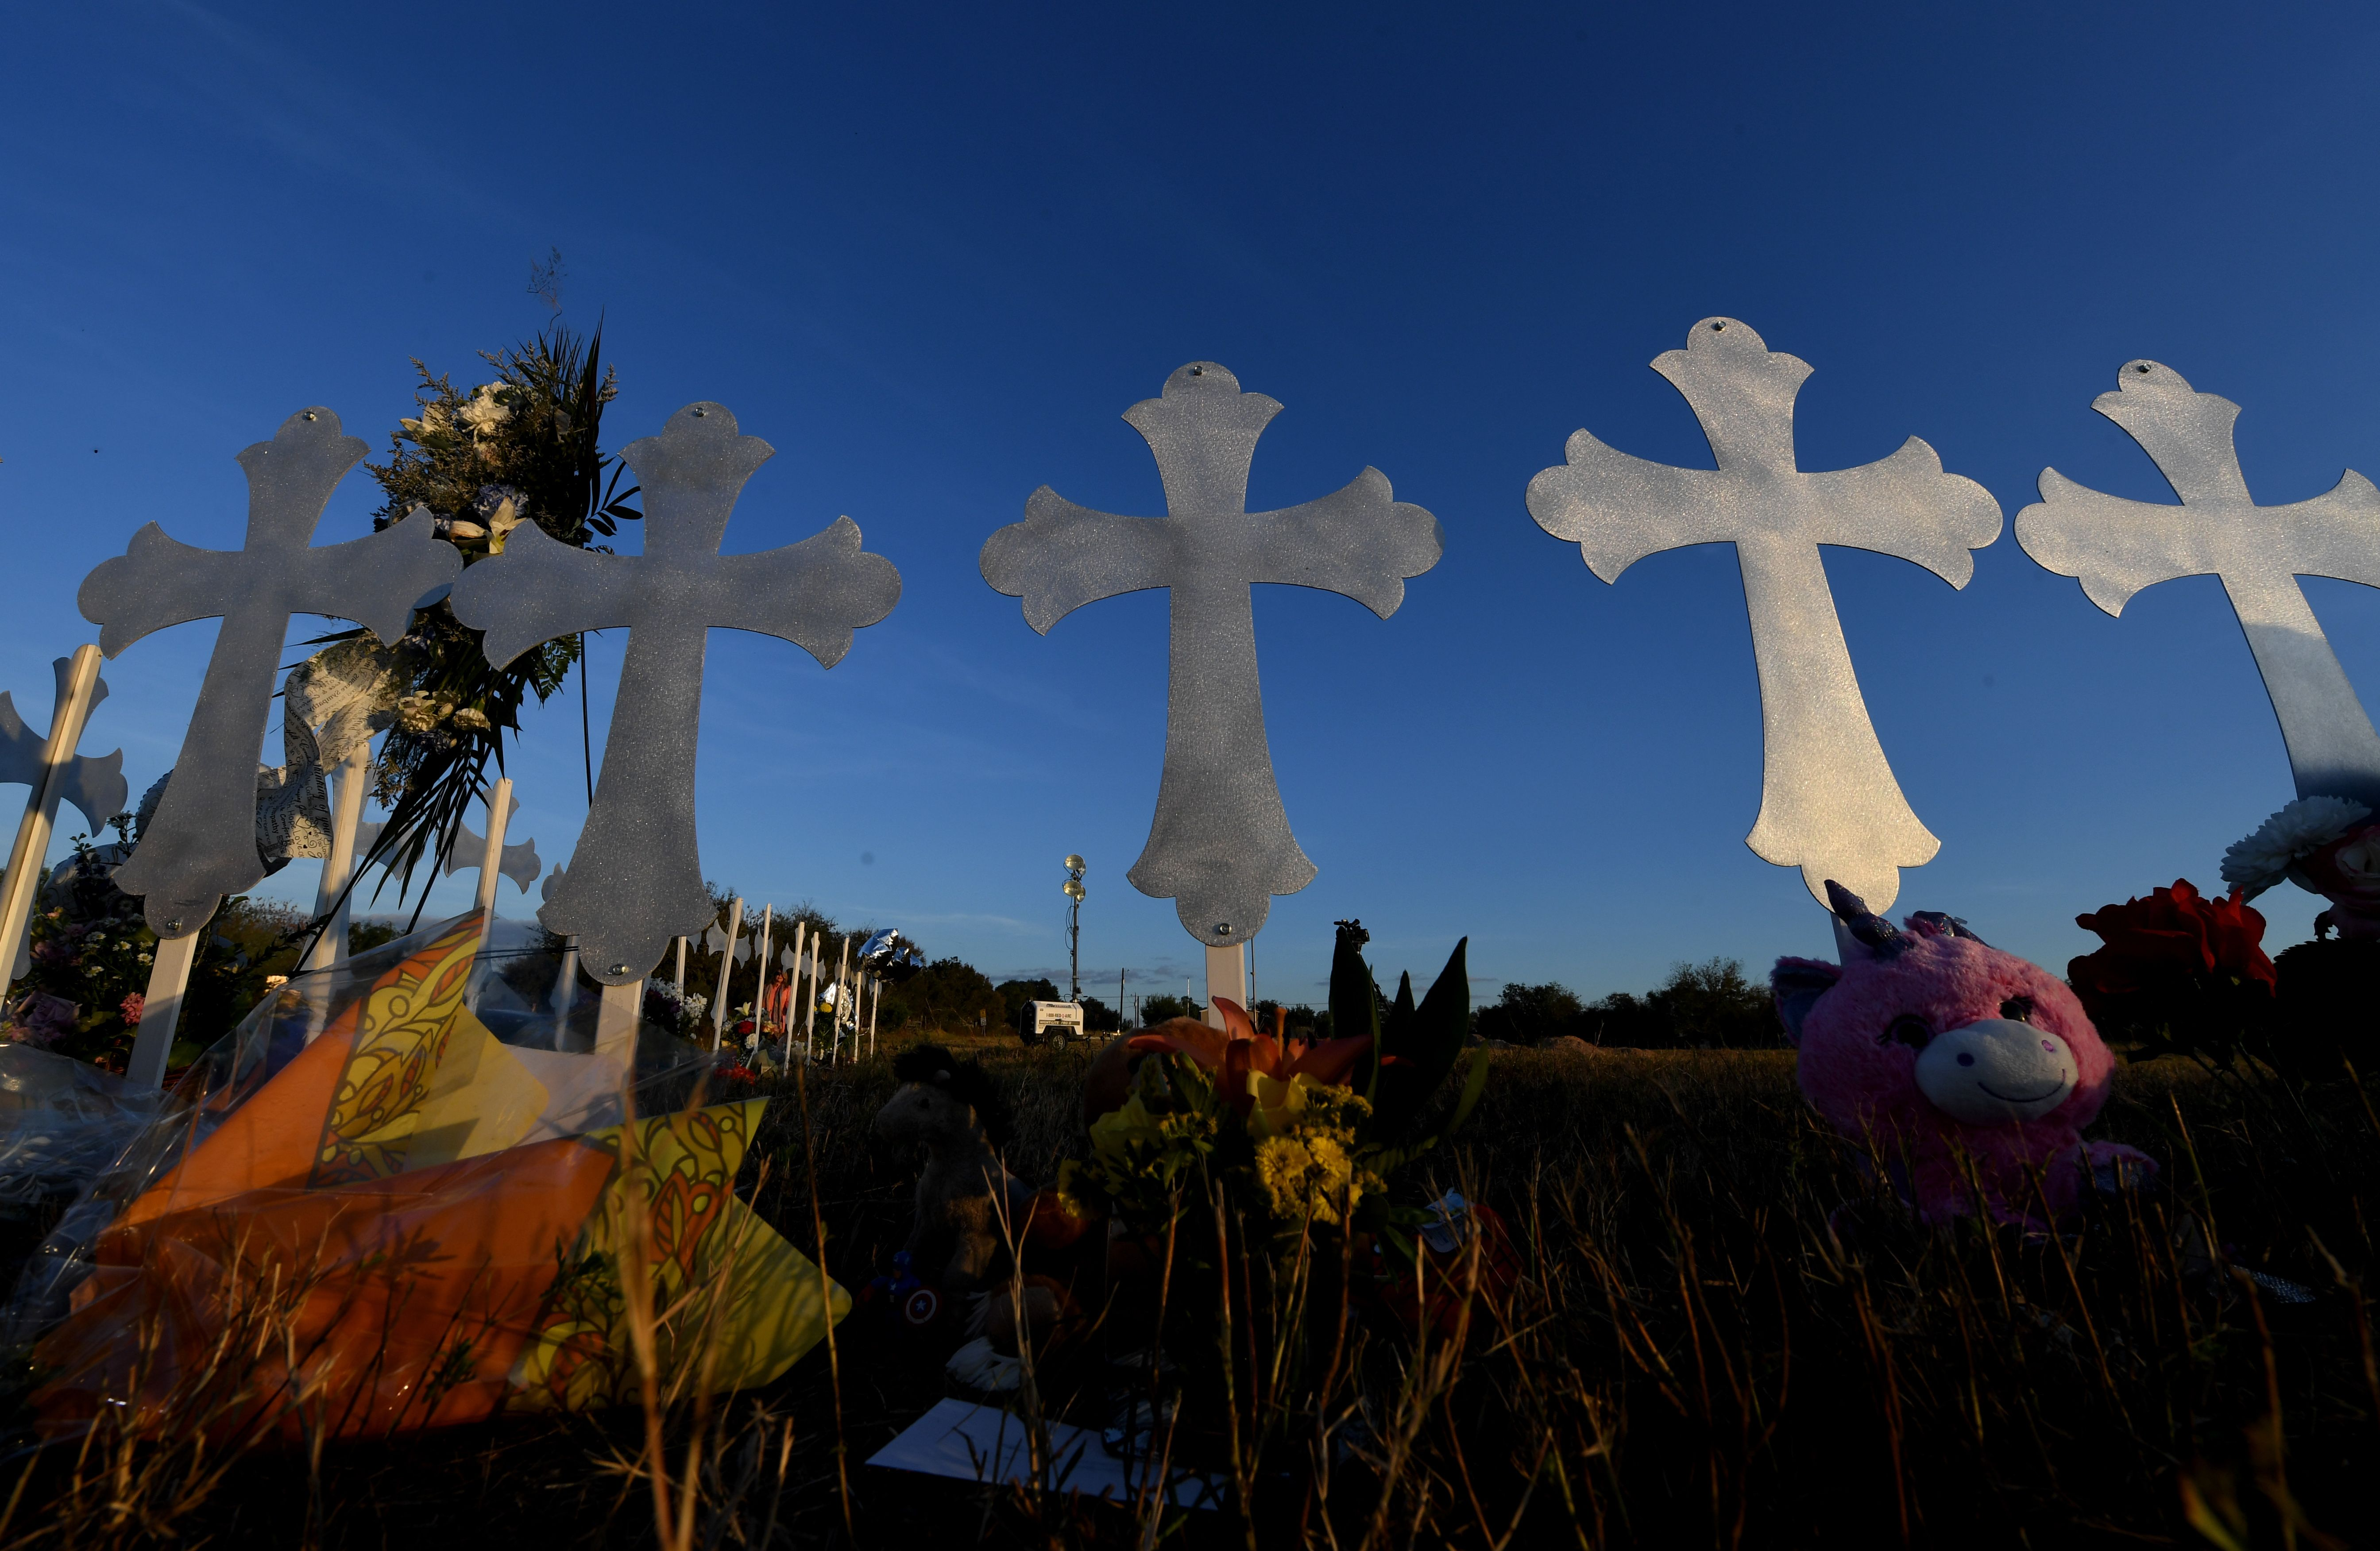 A memorial of crosses are seen after a mass shooting that killed 26 people in Sutherland Springs, Texas on Nov. 7, 2017.